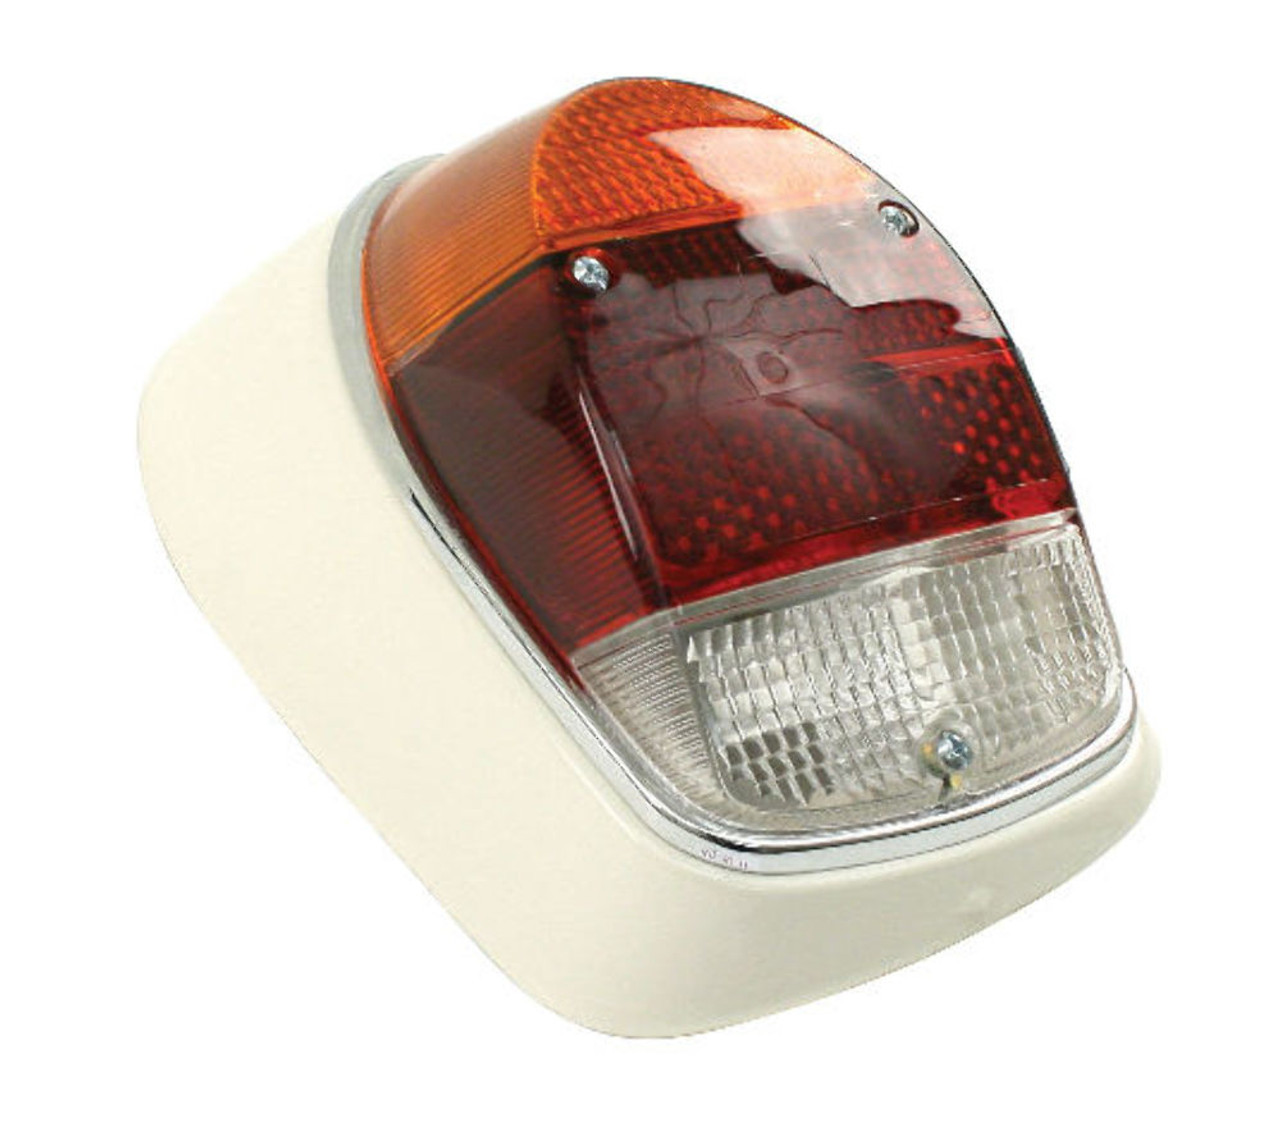 Tail Light Assembly, Right Complete, Euro Style, Fits VW Bug 68-70, EMPI 98-1092